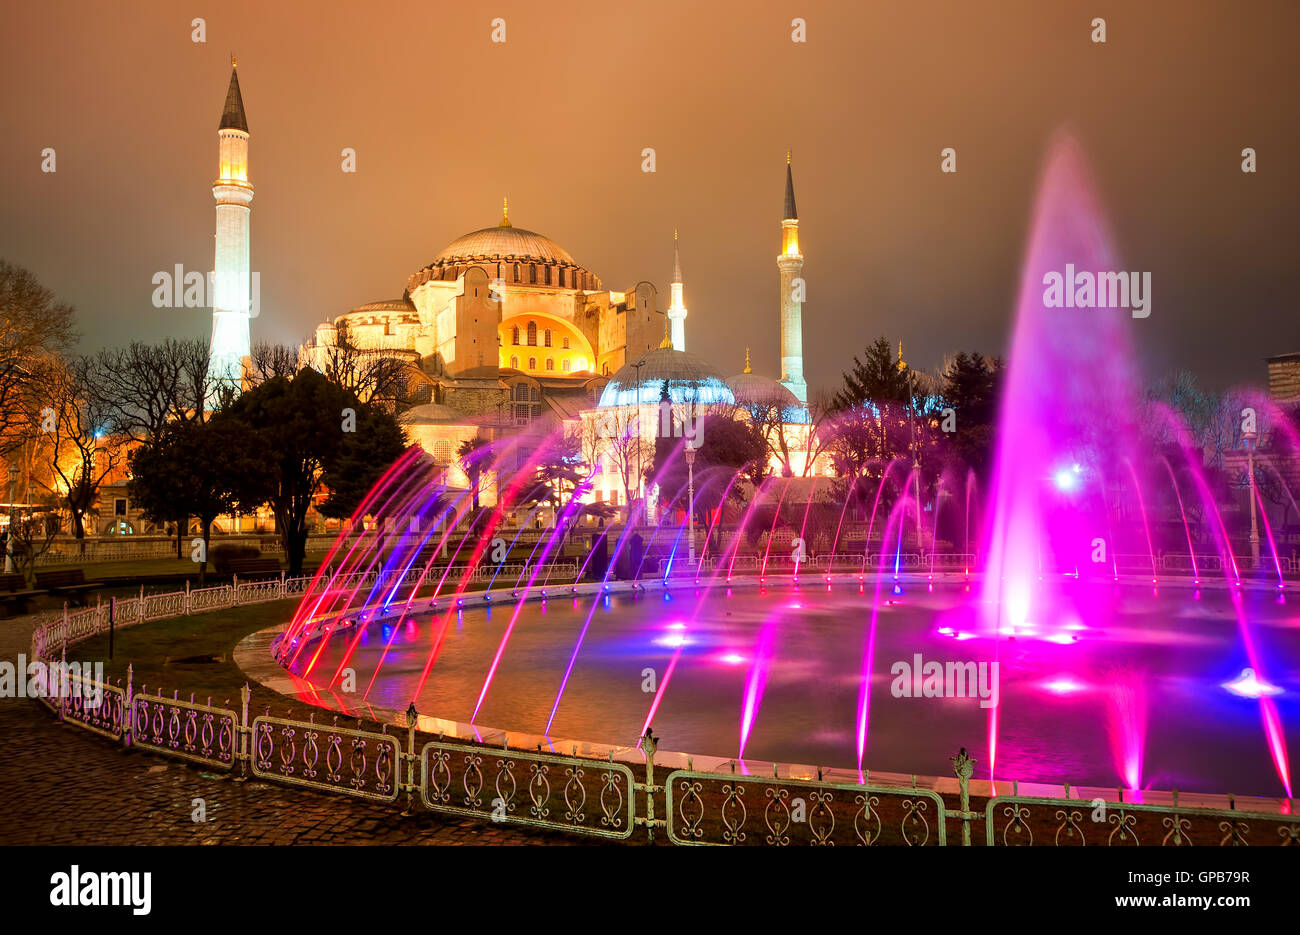 Hagia Sophia was built as christian cathedral, served as imperial mosque and is now a famous museum in Istanbul, - Stock Image